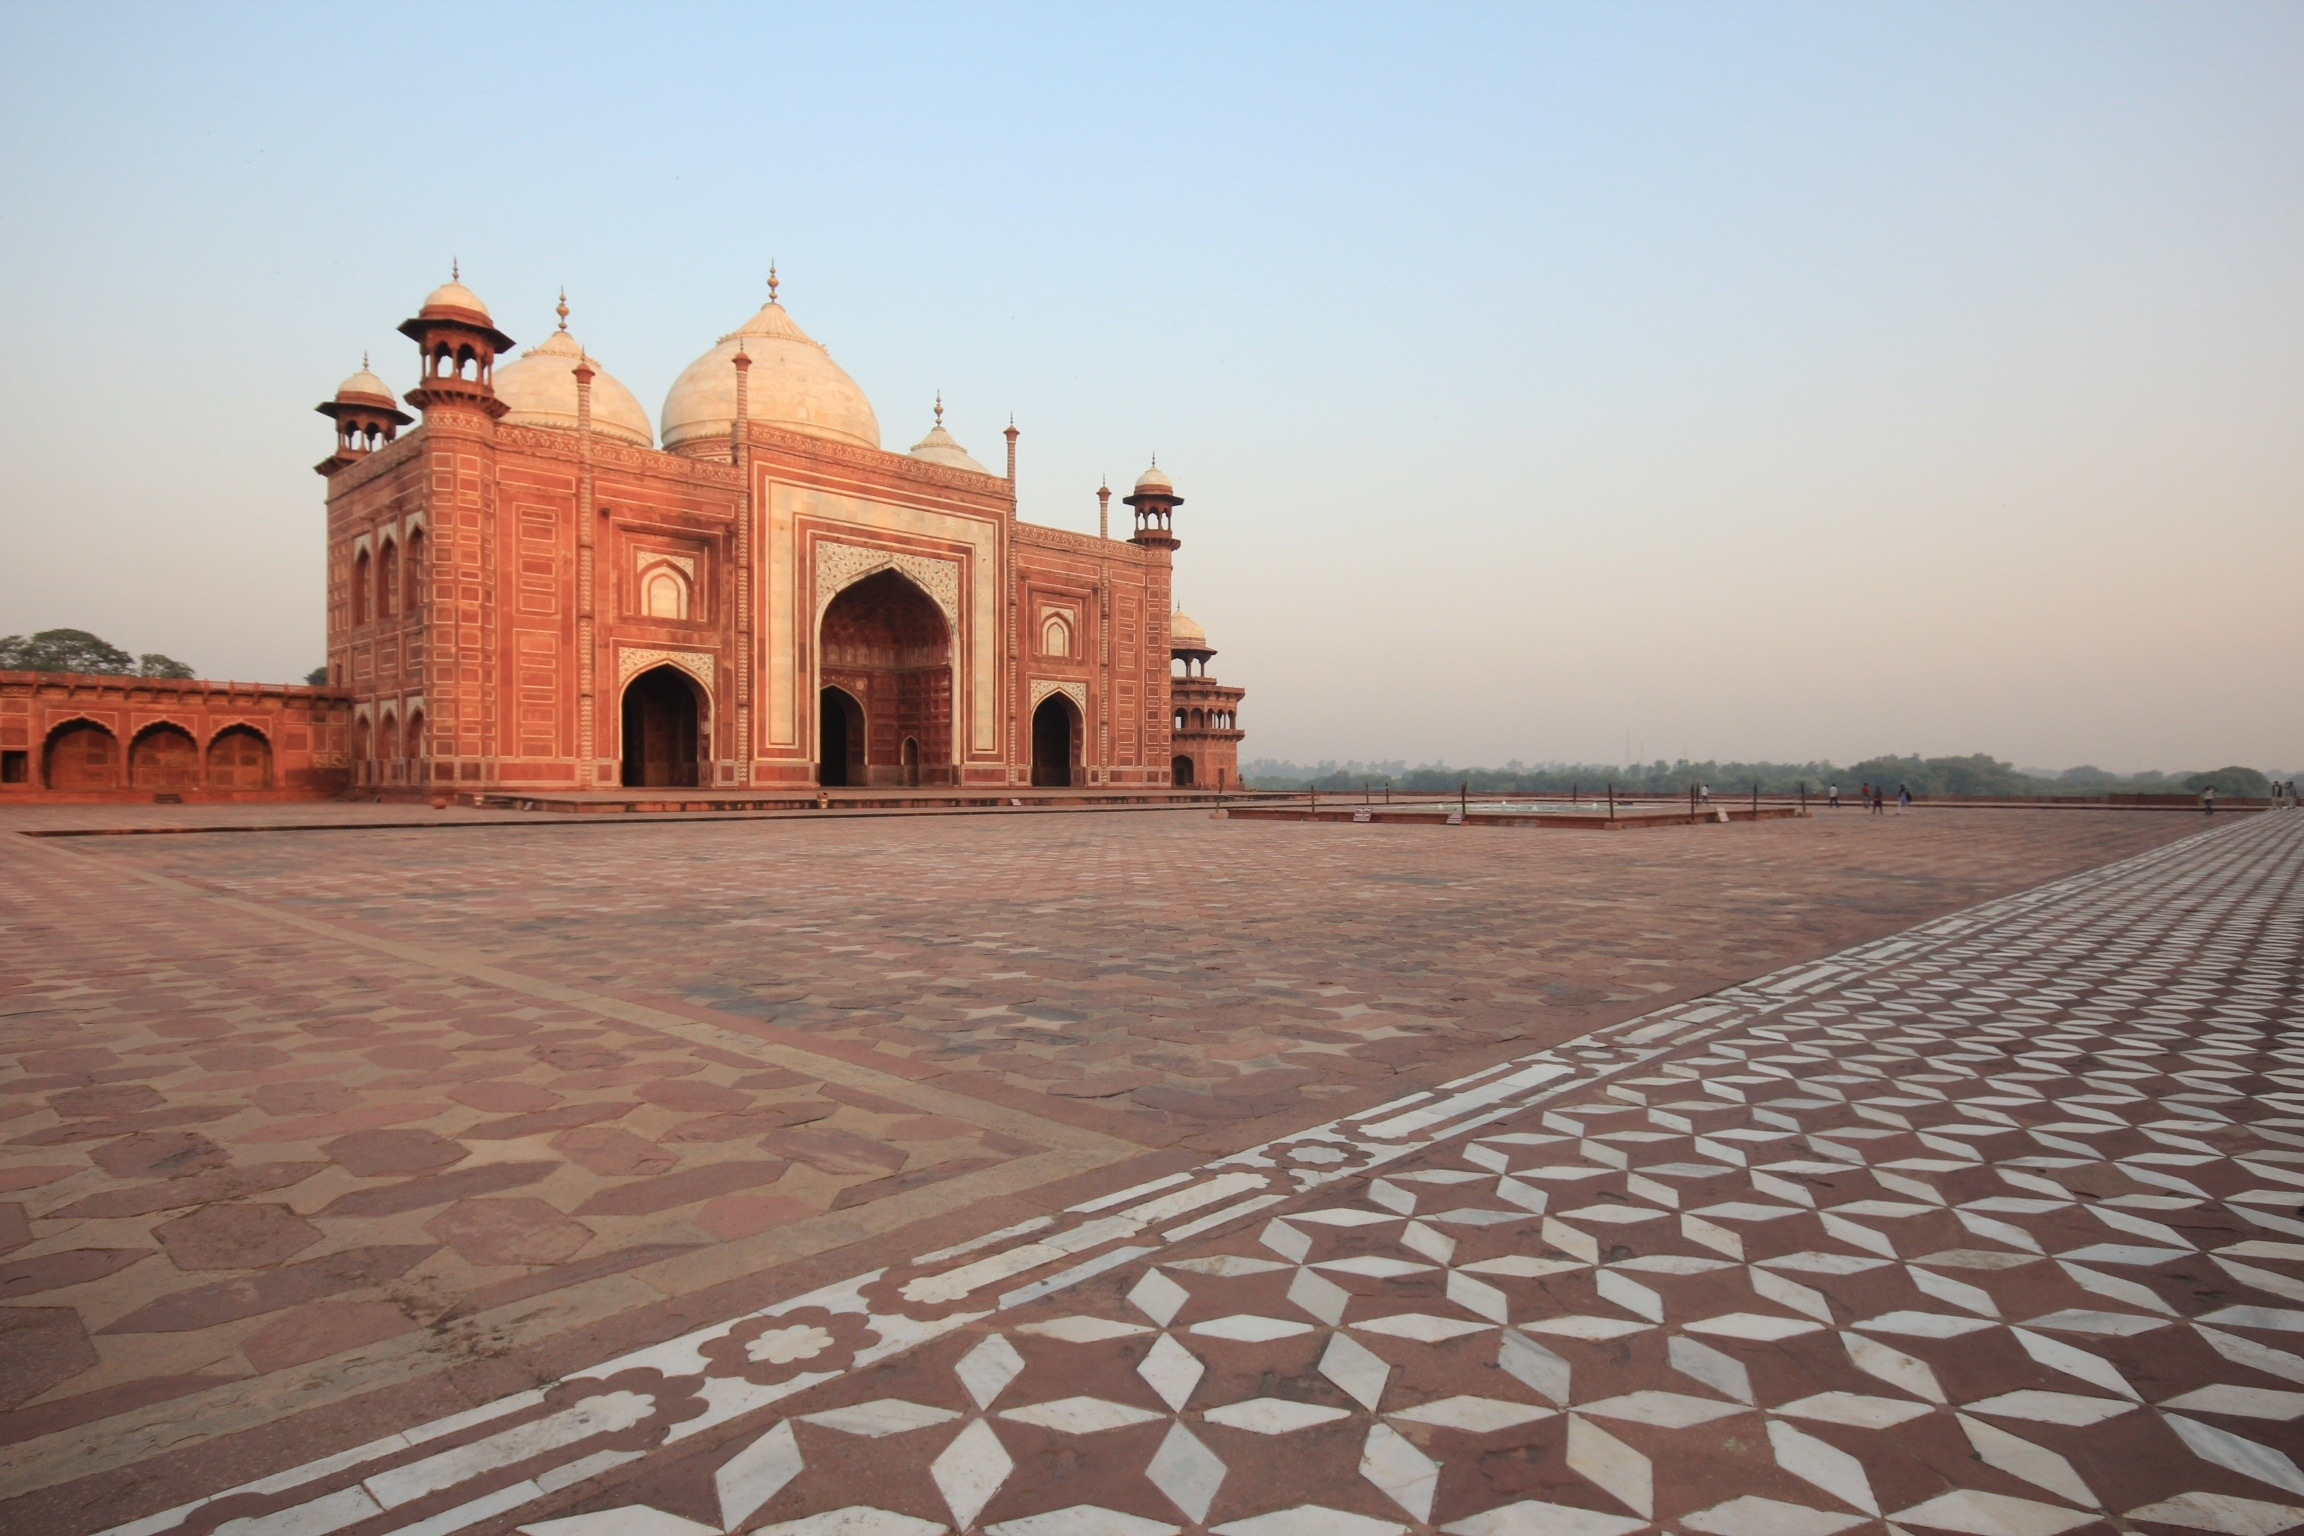 essay on a visit to a historical place taj mahal This article provides information about taj mahal history read on to know about the history of taj mahal in agra city of india.